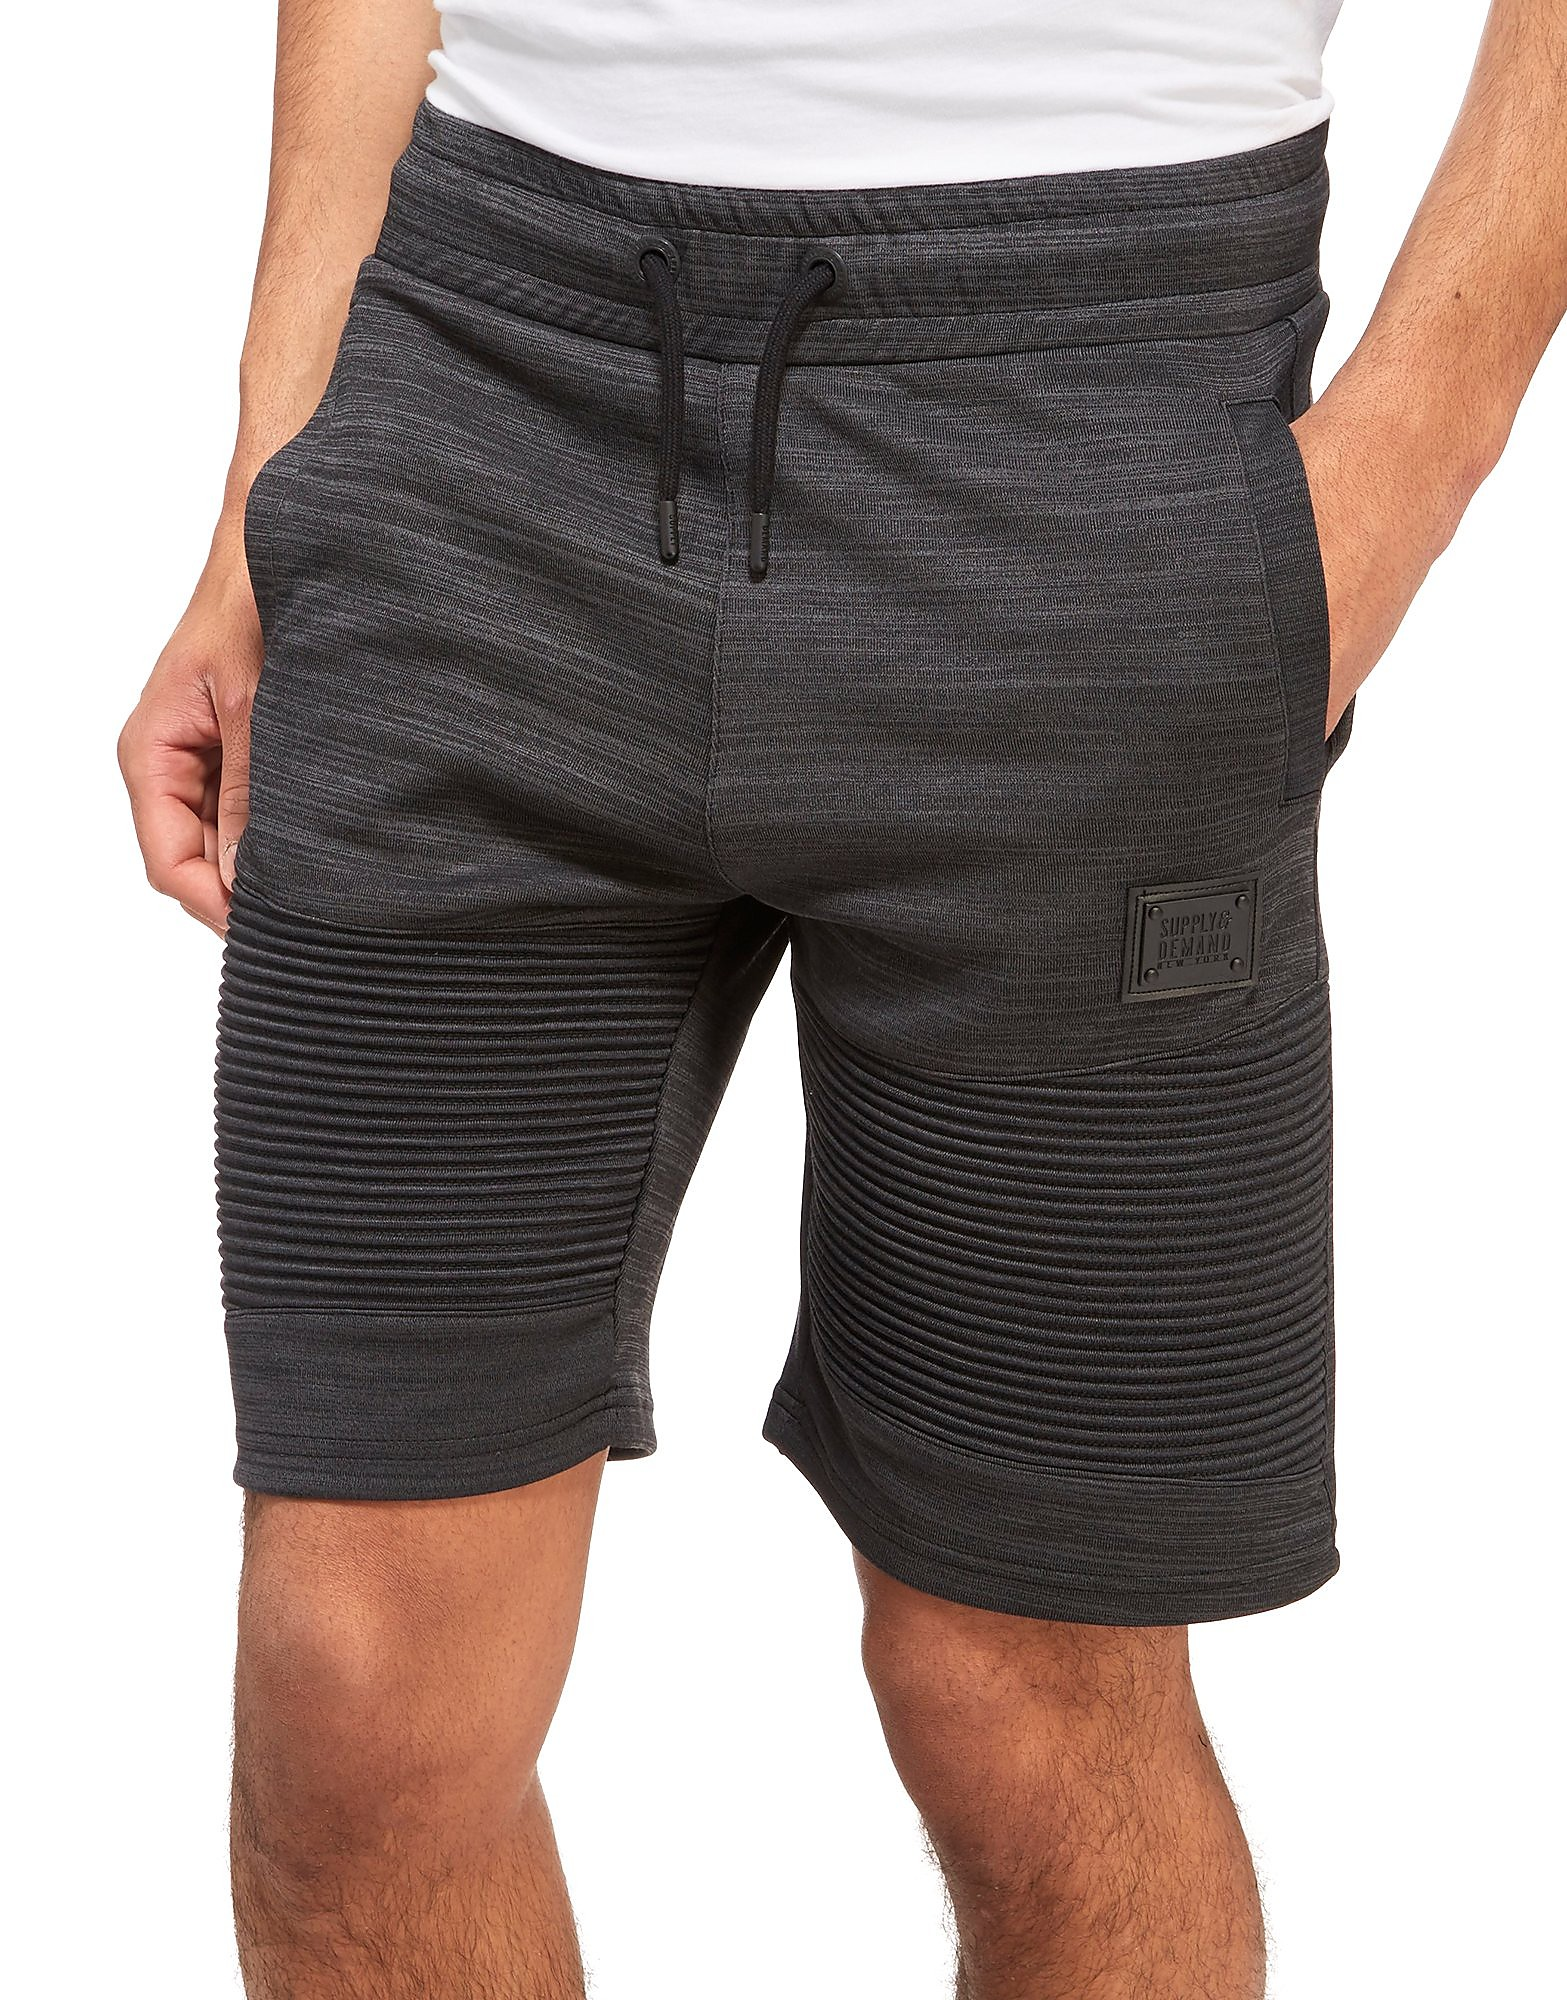 Supply & Demand Dark Shorts